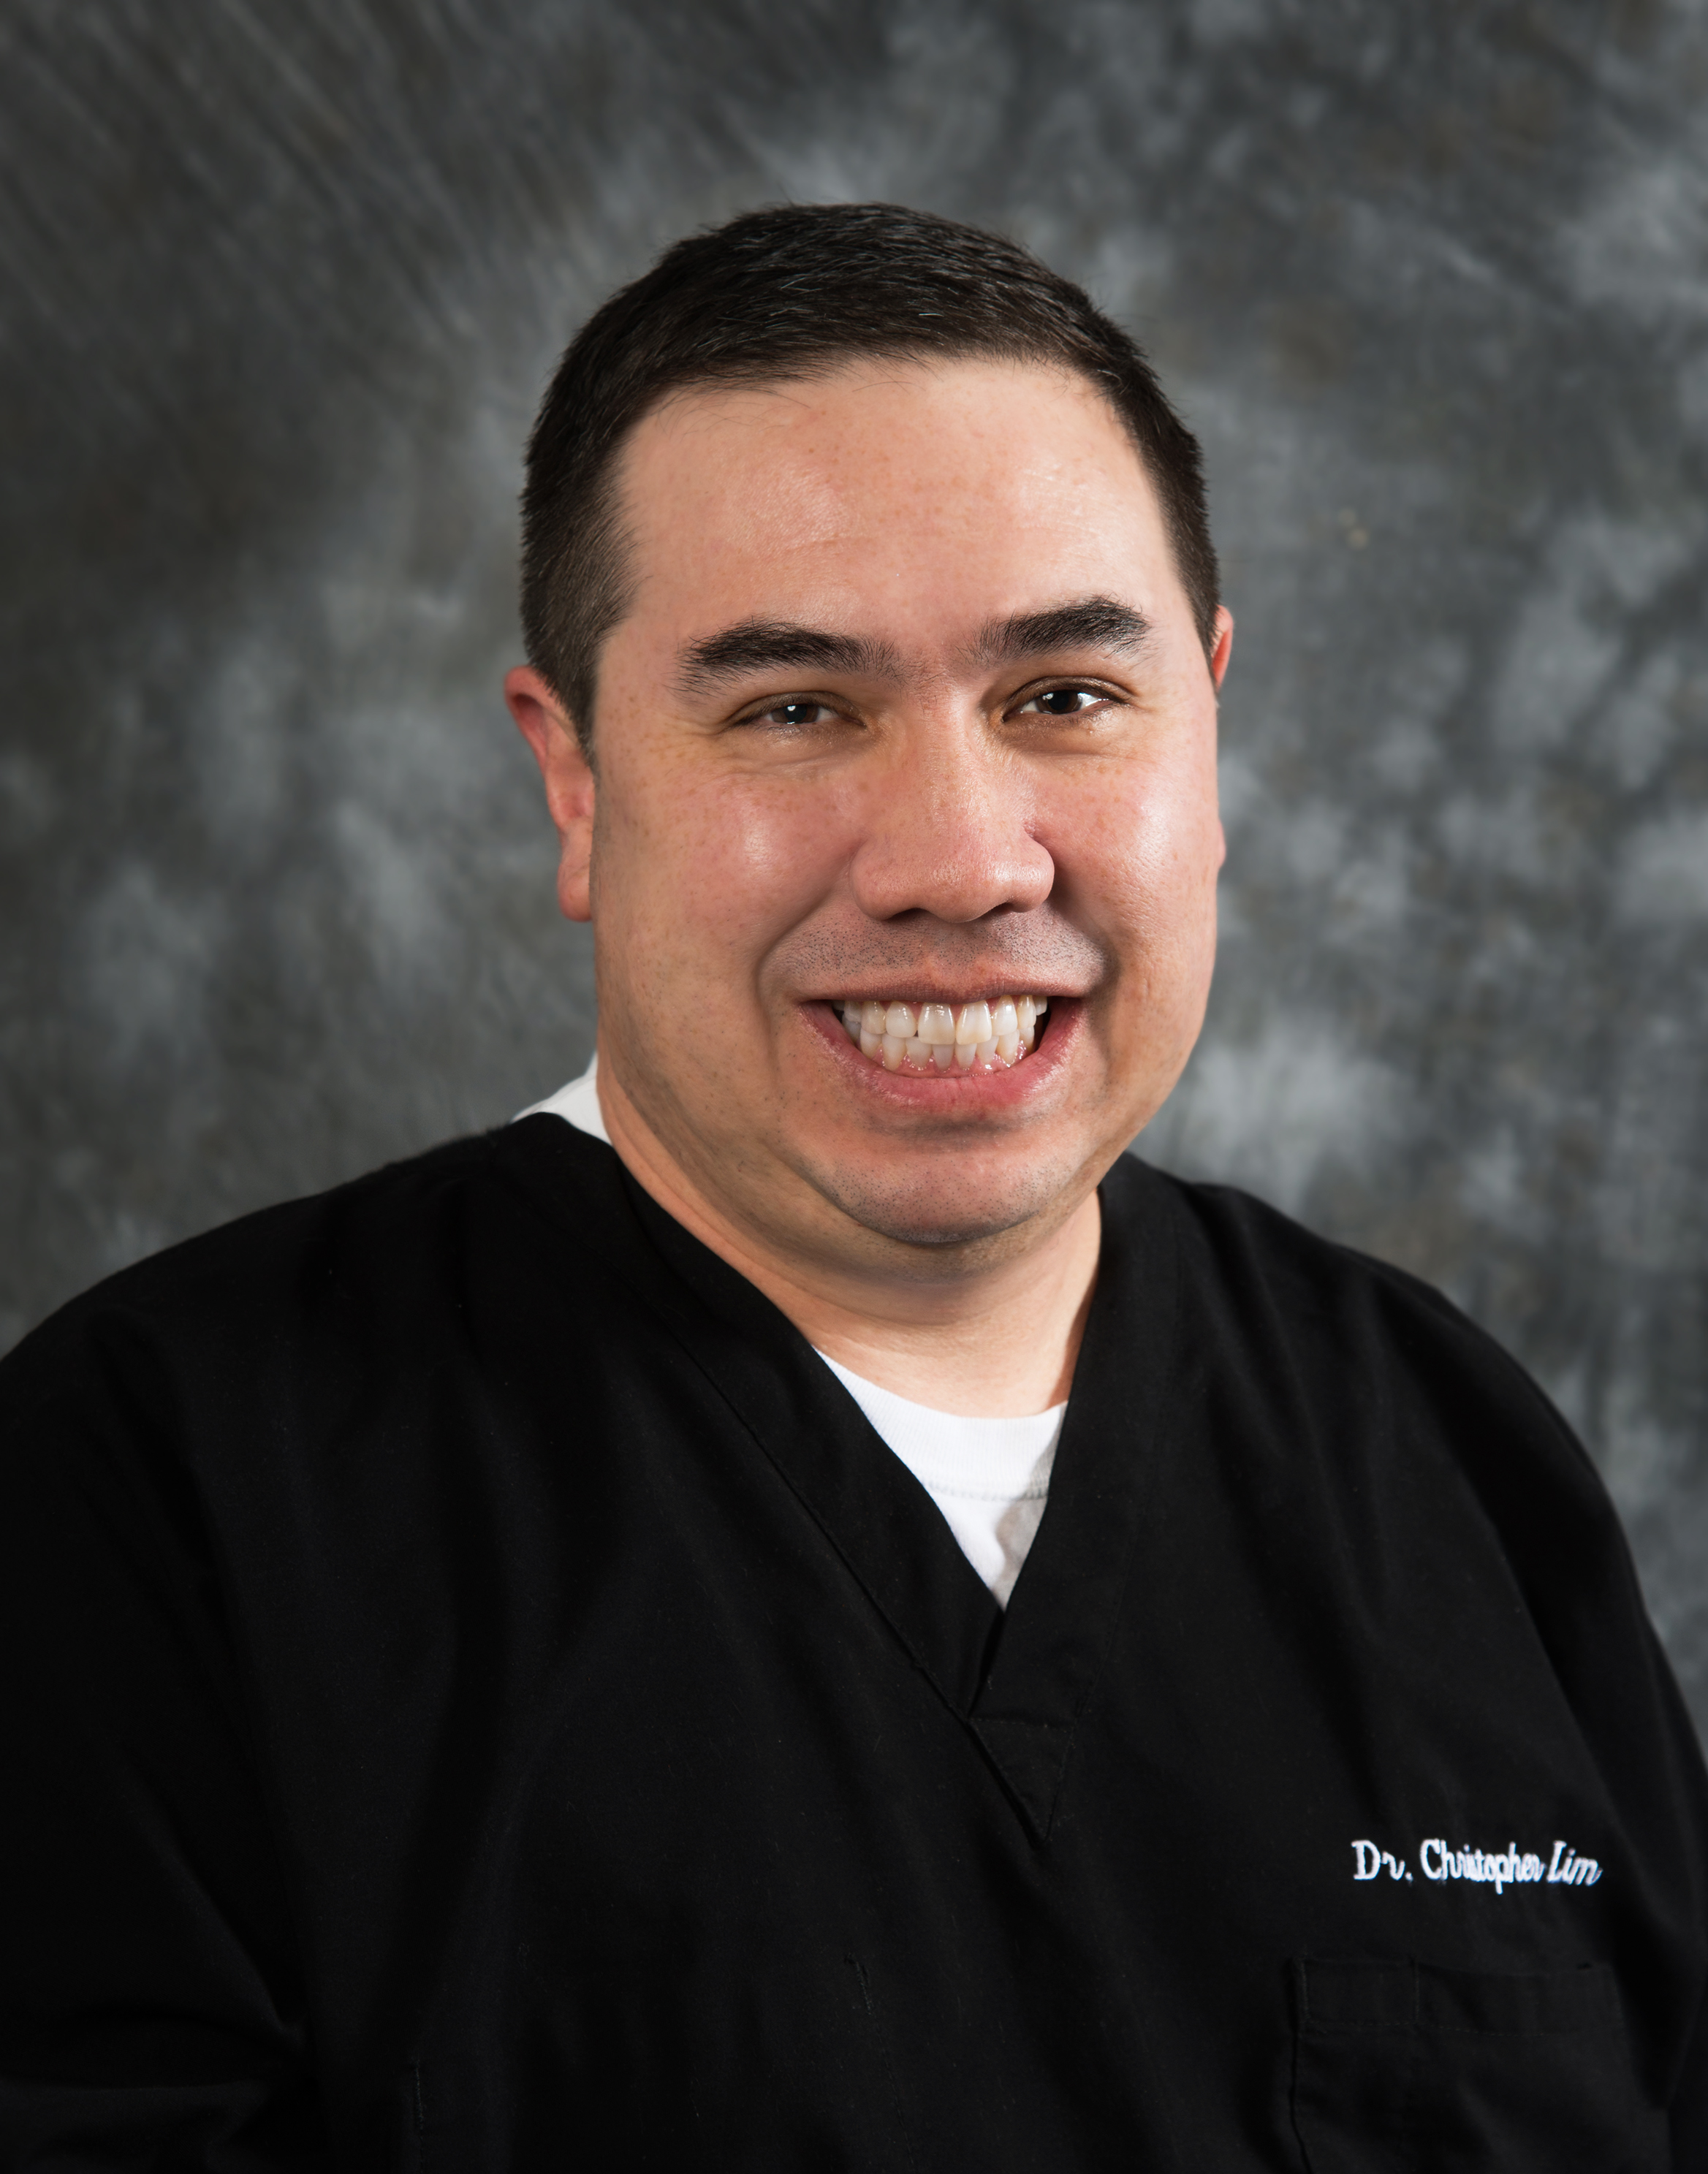 Dr. Christopher Lim - Chico Dentist